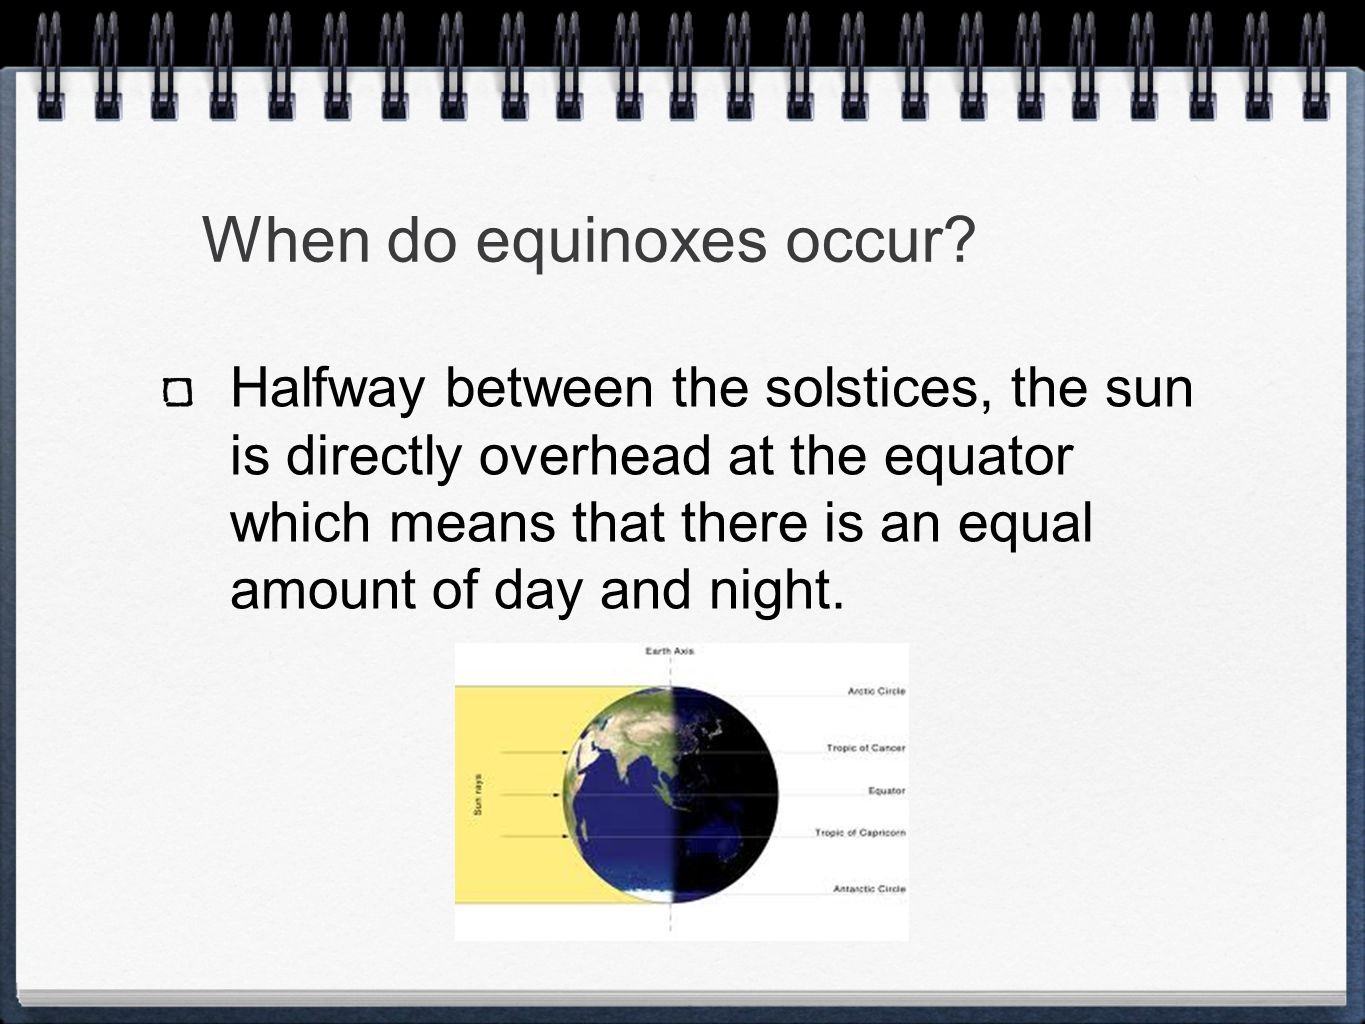 When do equinoxes occur